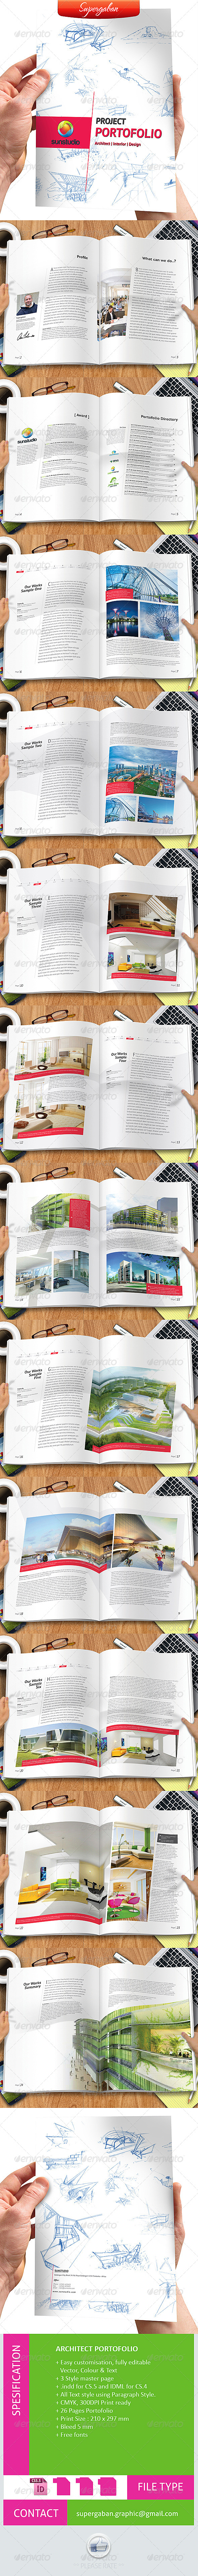 GraphicRiver Architect Portfolio 7238540